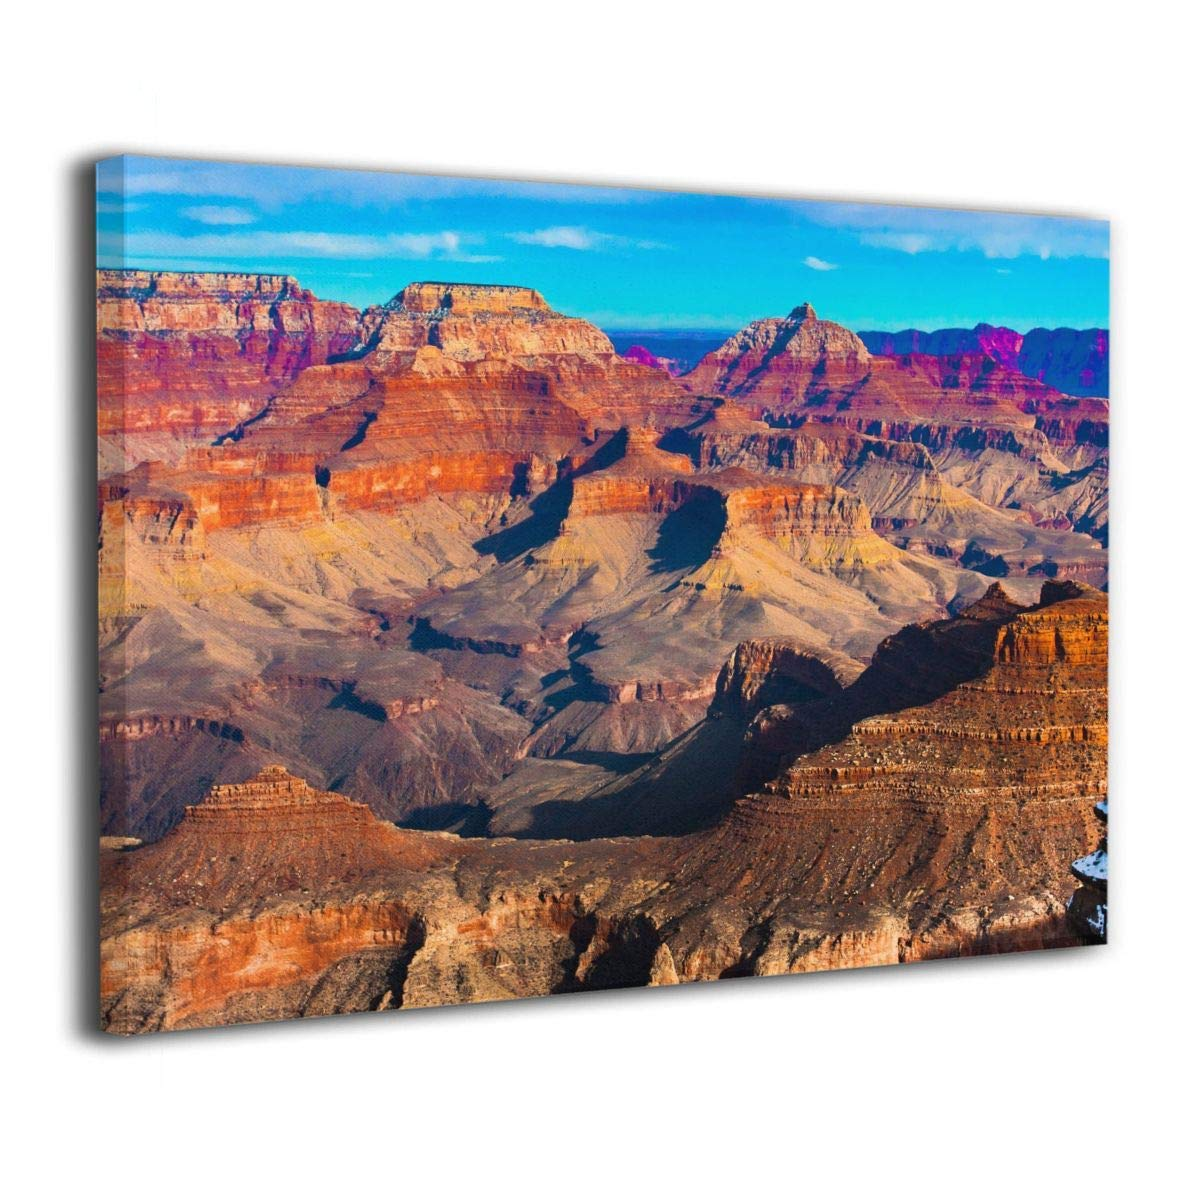 Amazon Com Oanaklsd The Beautiful Landscape Of Grand Canyon